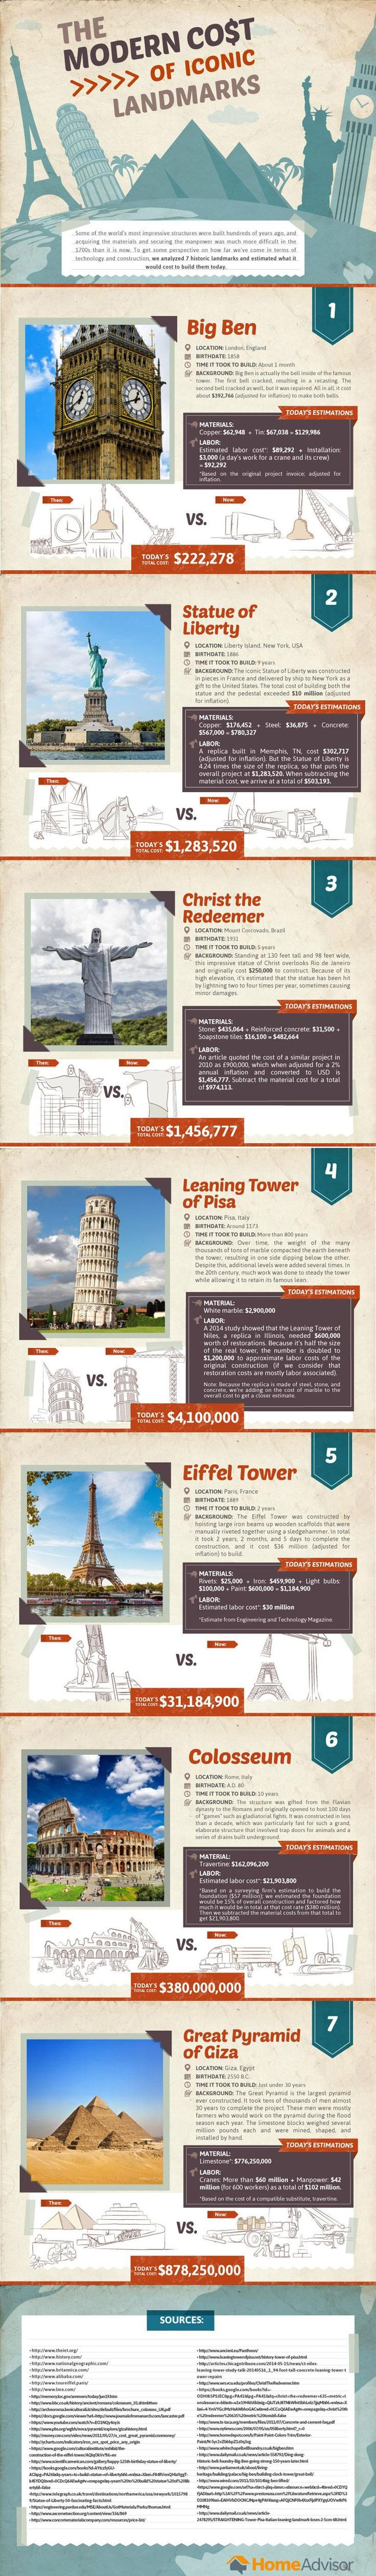 Here's how much the world's most iconic landmarks would cost if they were built today.